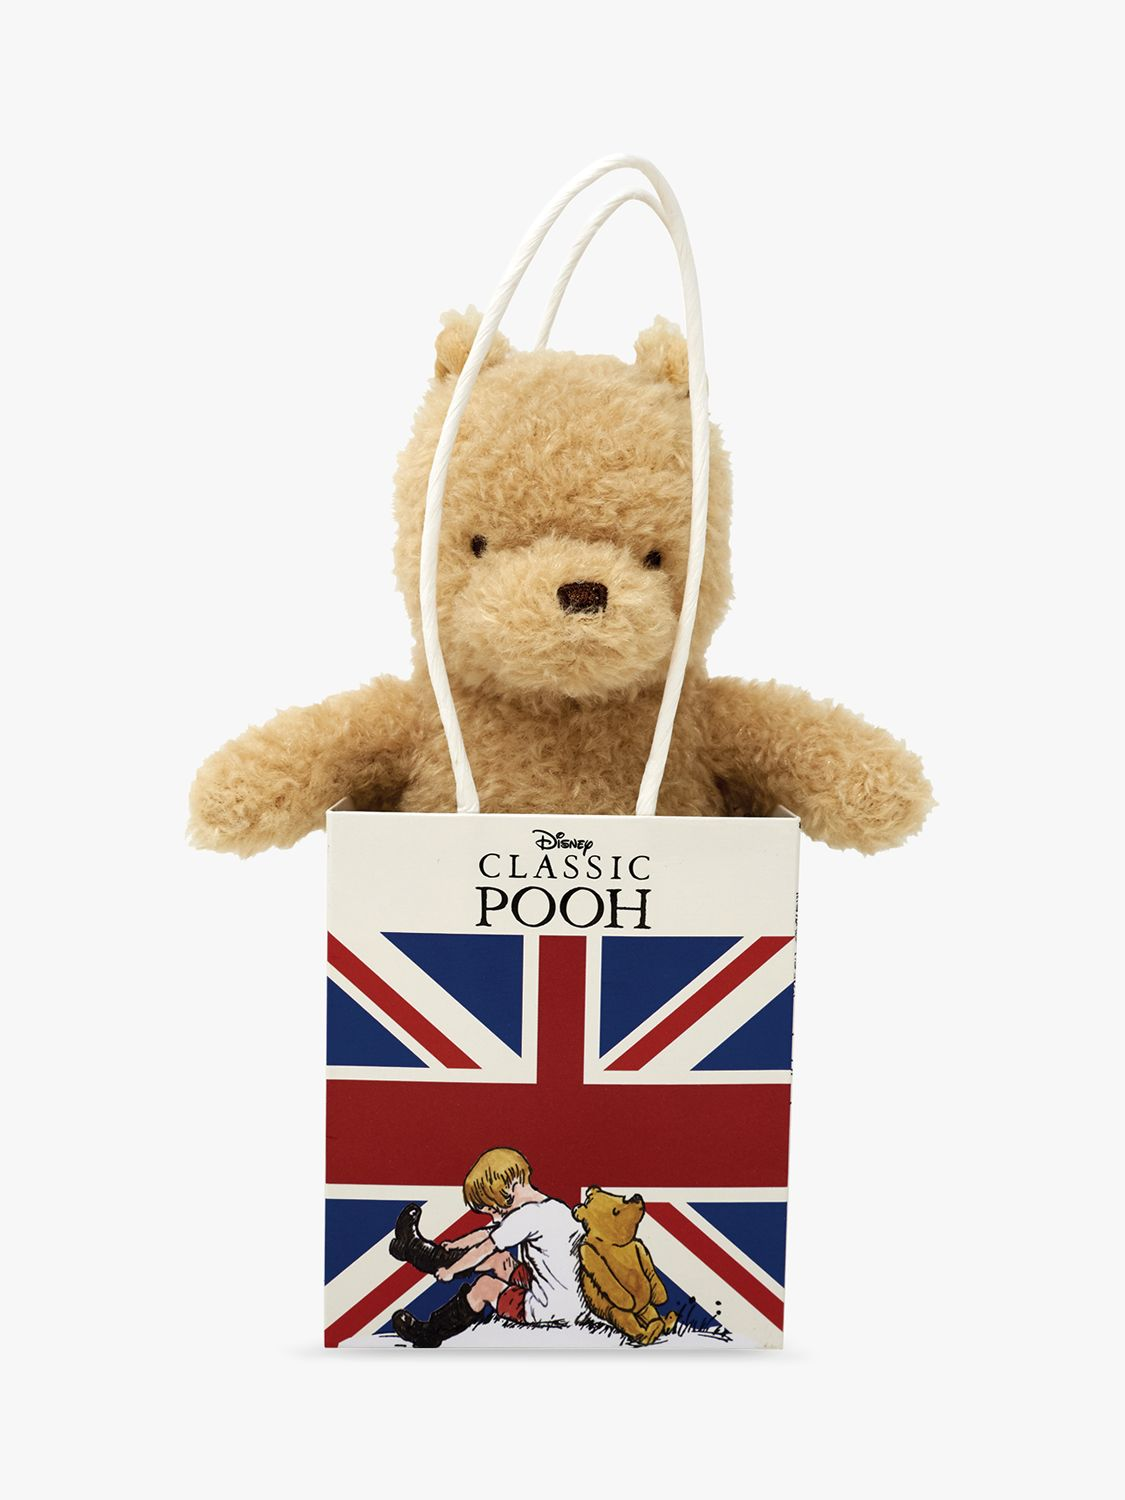 Winnie the pooh Winnie the Pooh Classic Pooh in the Union Jack Soft Toy